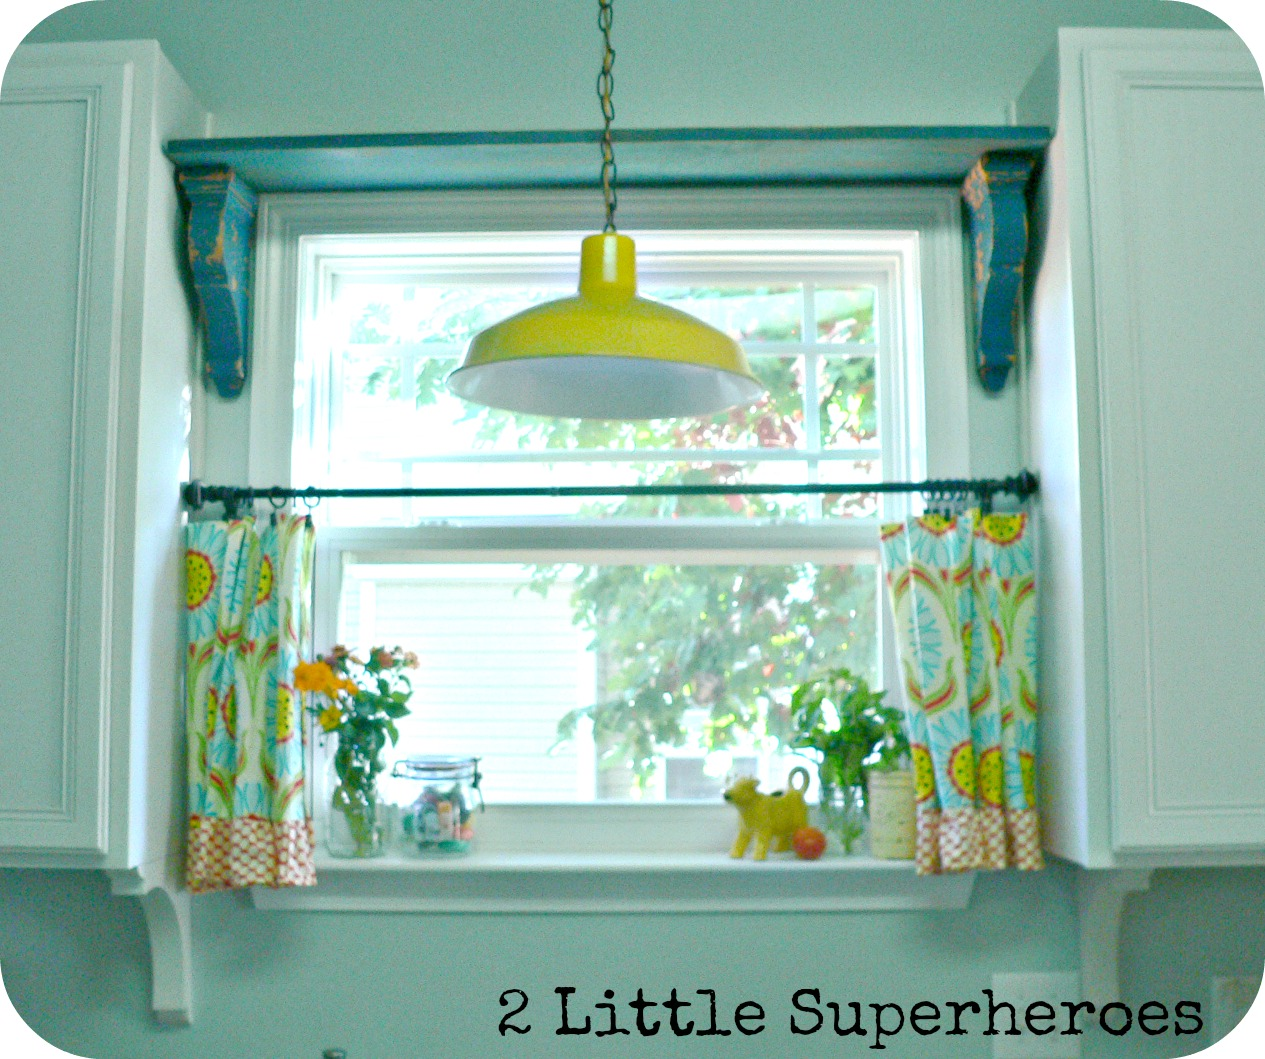 My Thrifty Kitchen Shelf - 2 Little Supeheroes2 Little Supeheroes